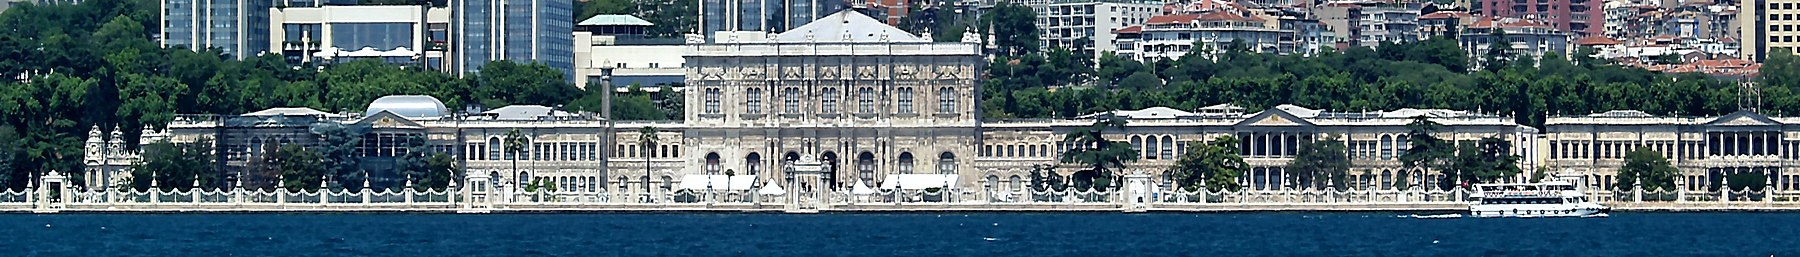 Dolmabahçe Palace as seen from the Bosphorus